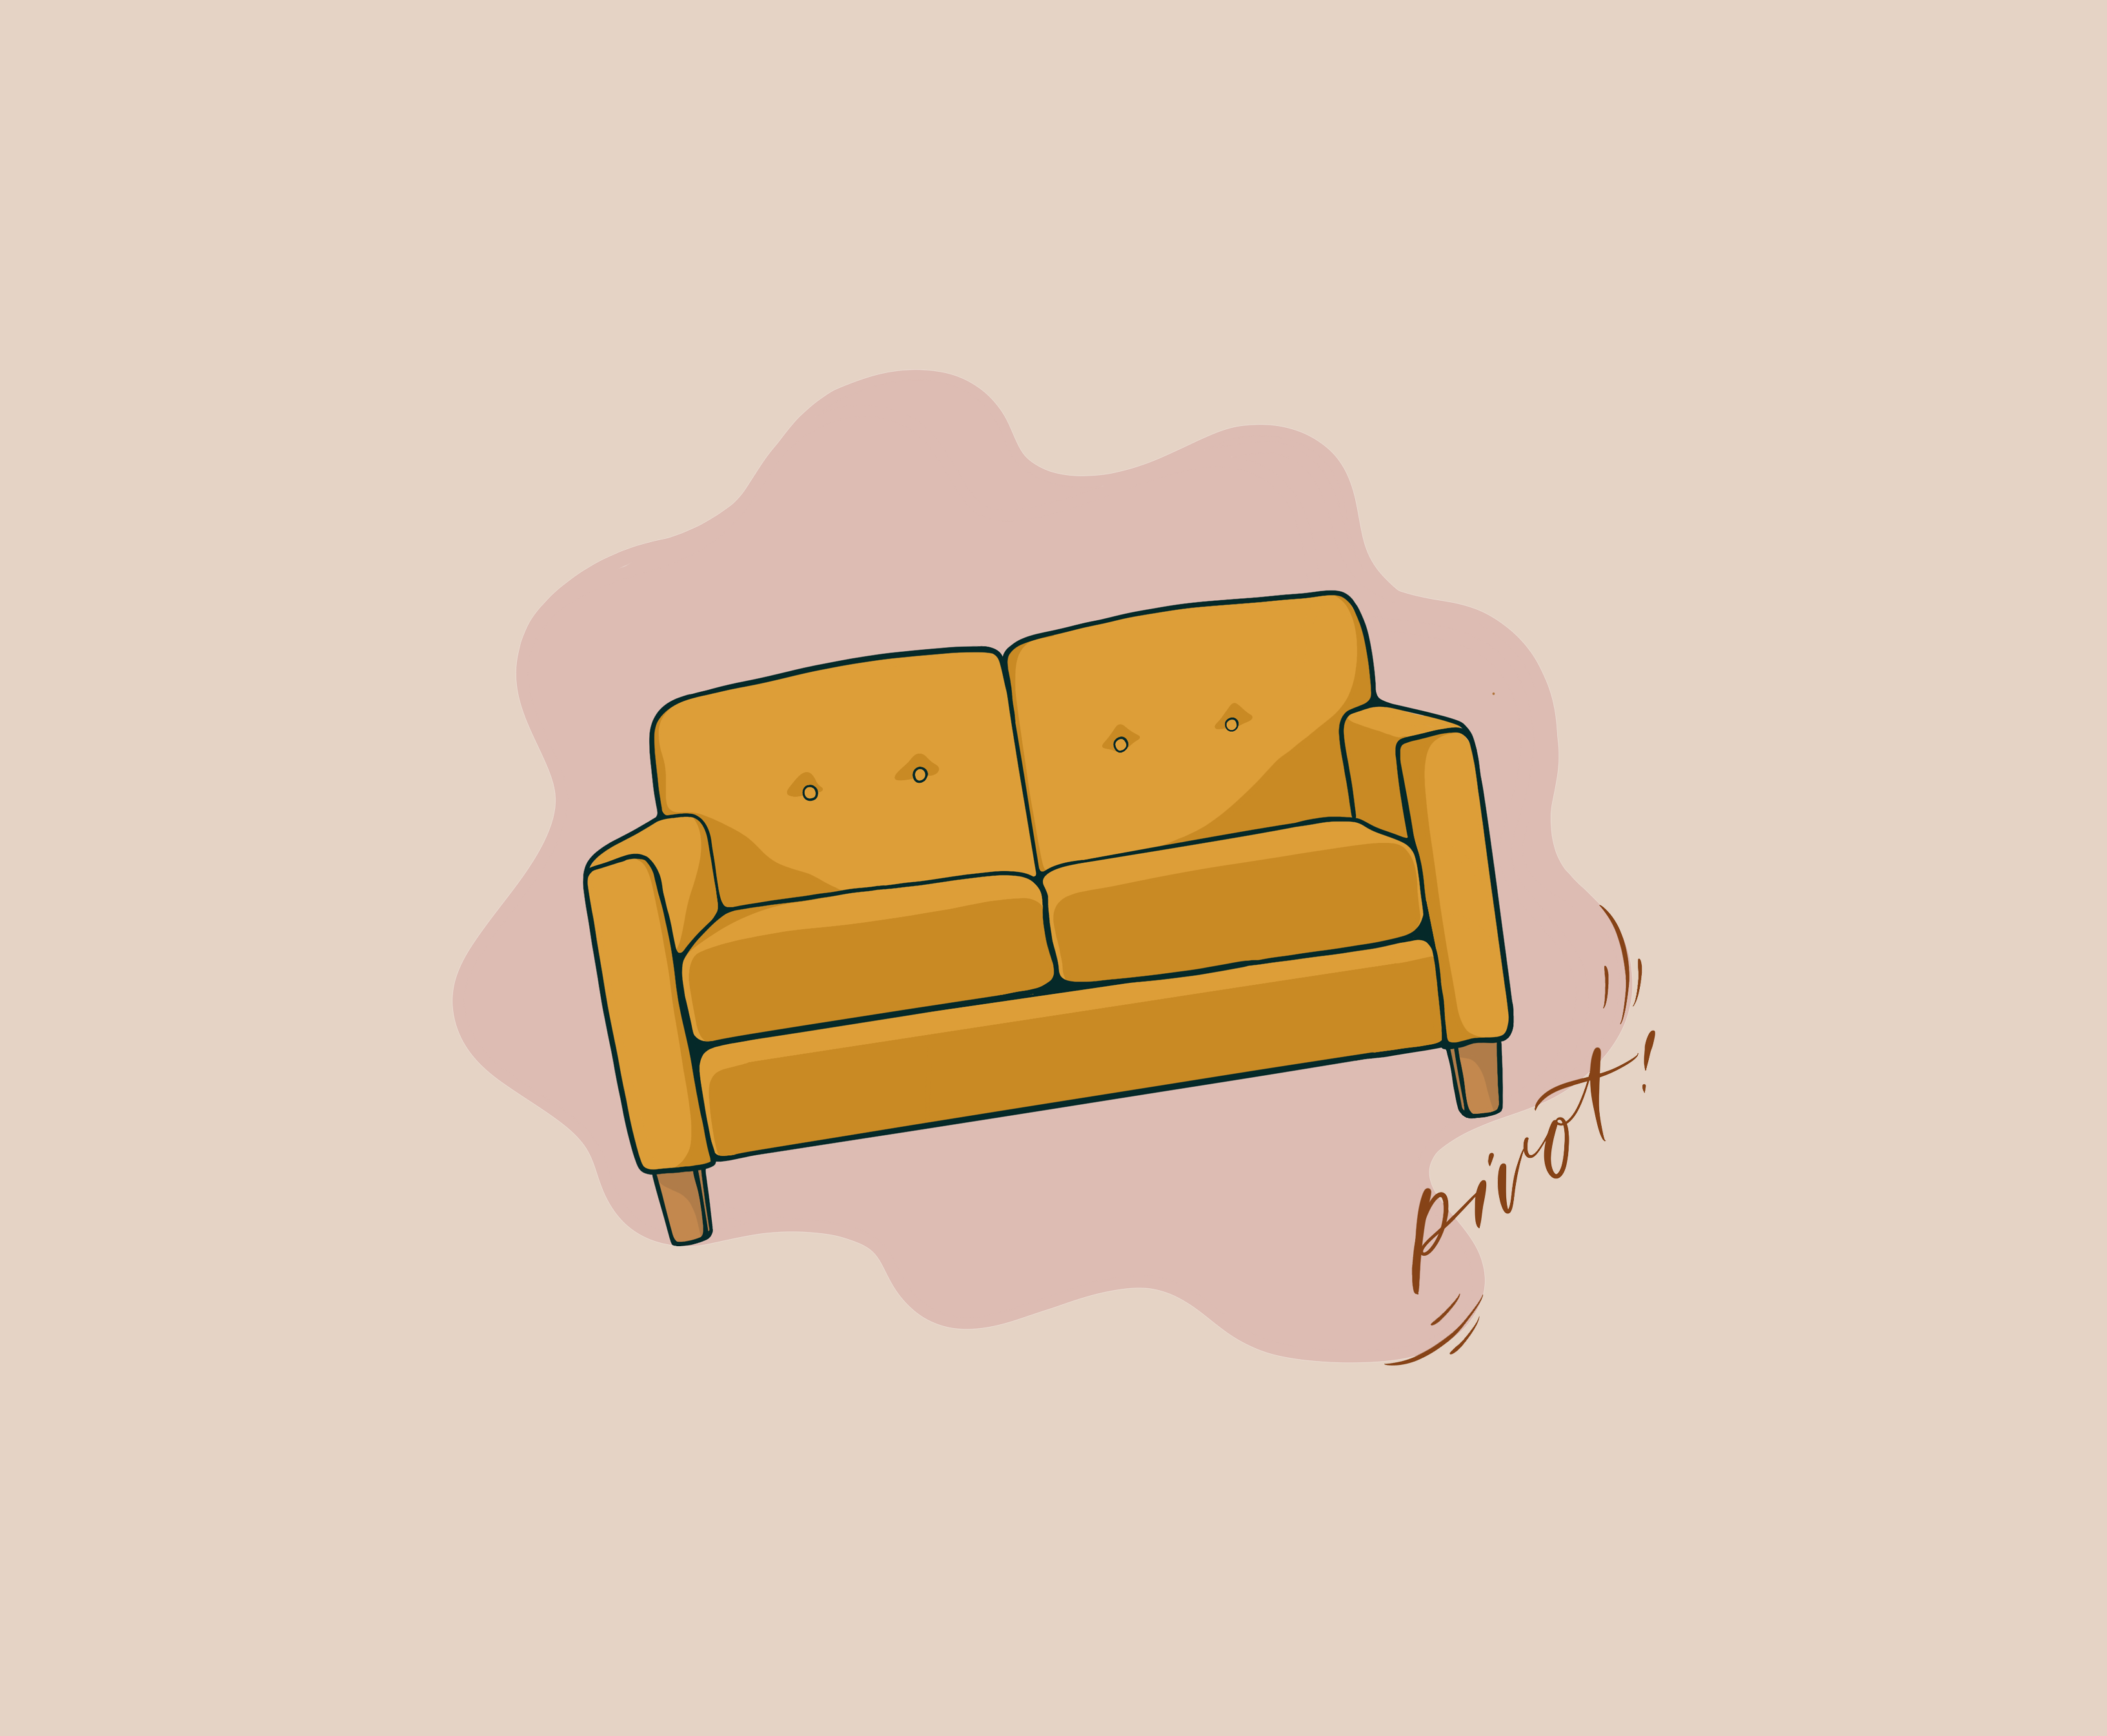 """An illustration of a yellow couch on an angle, with the word """"Pivot"""" written under the right couch leg"""